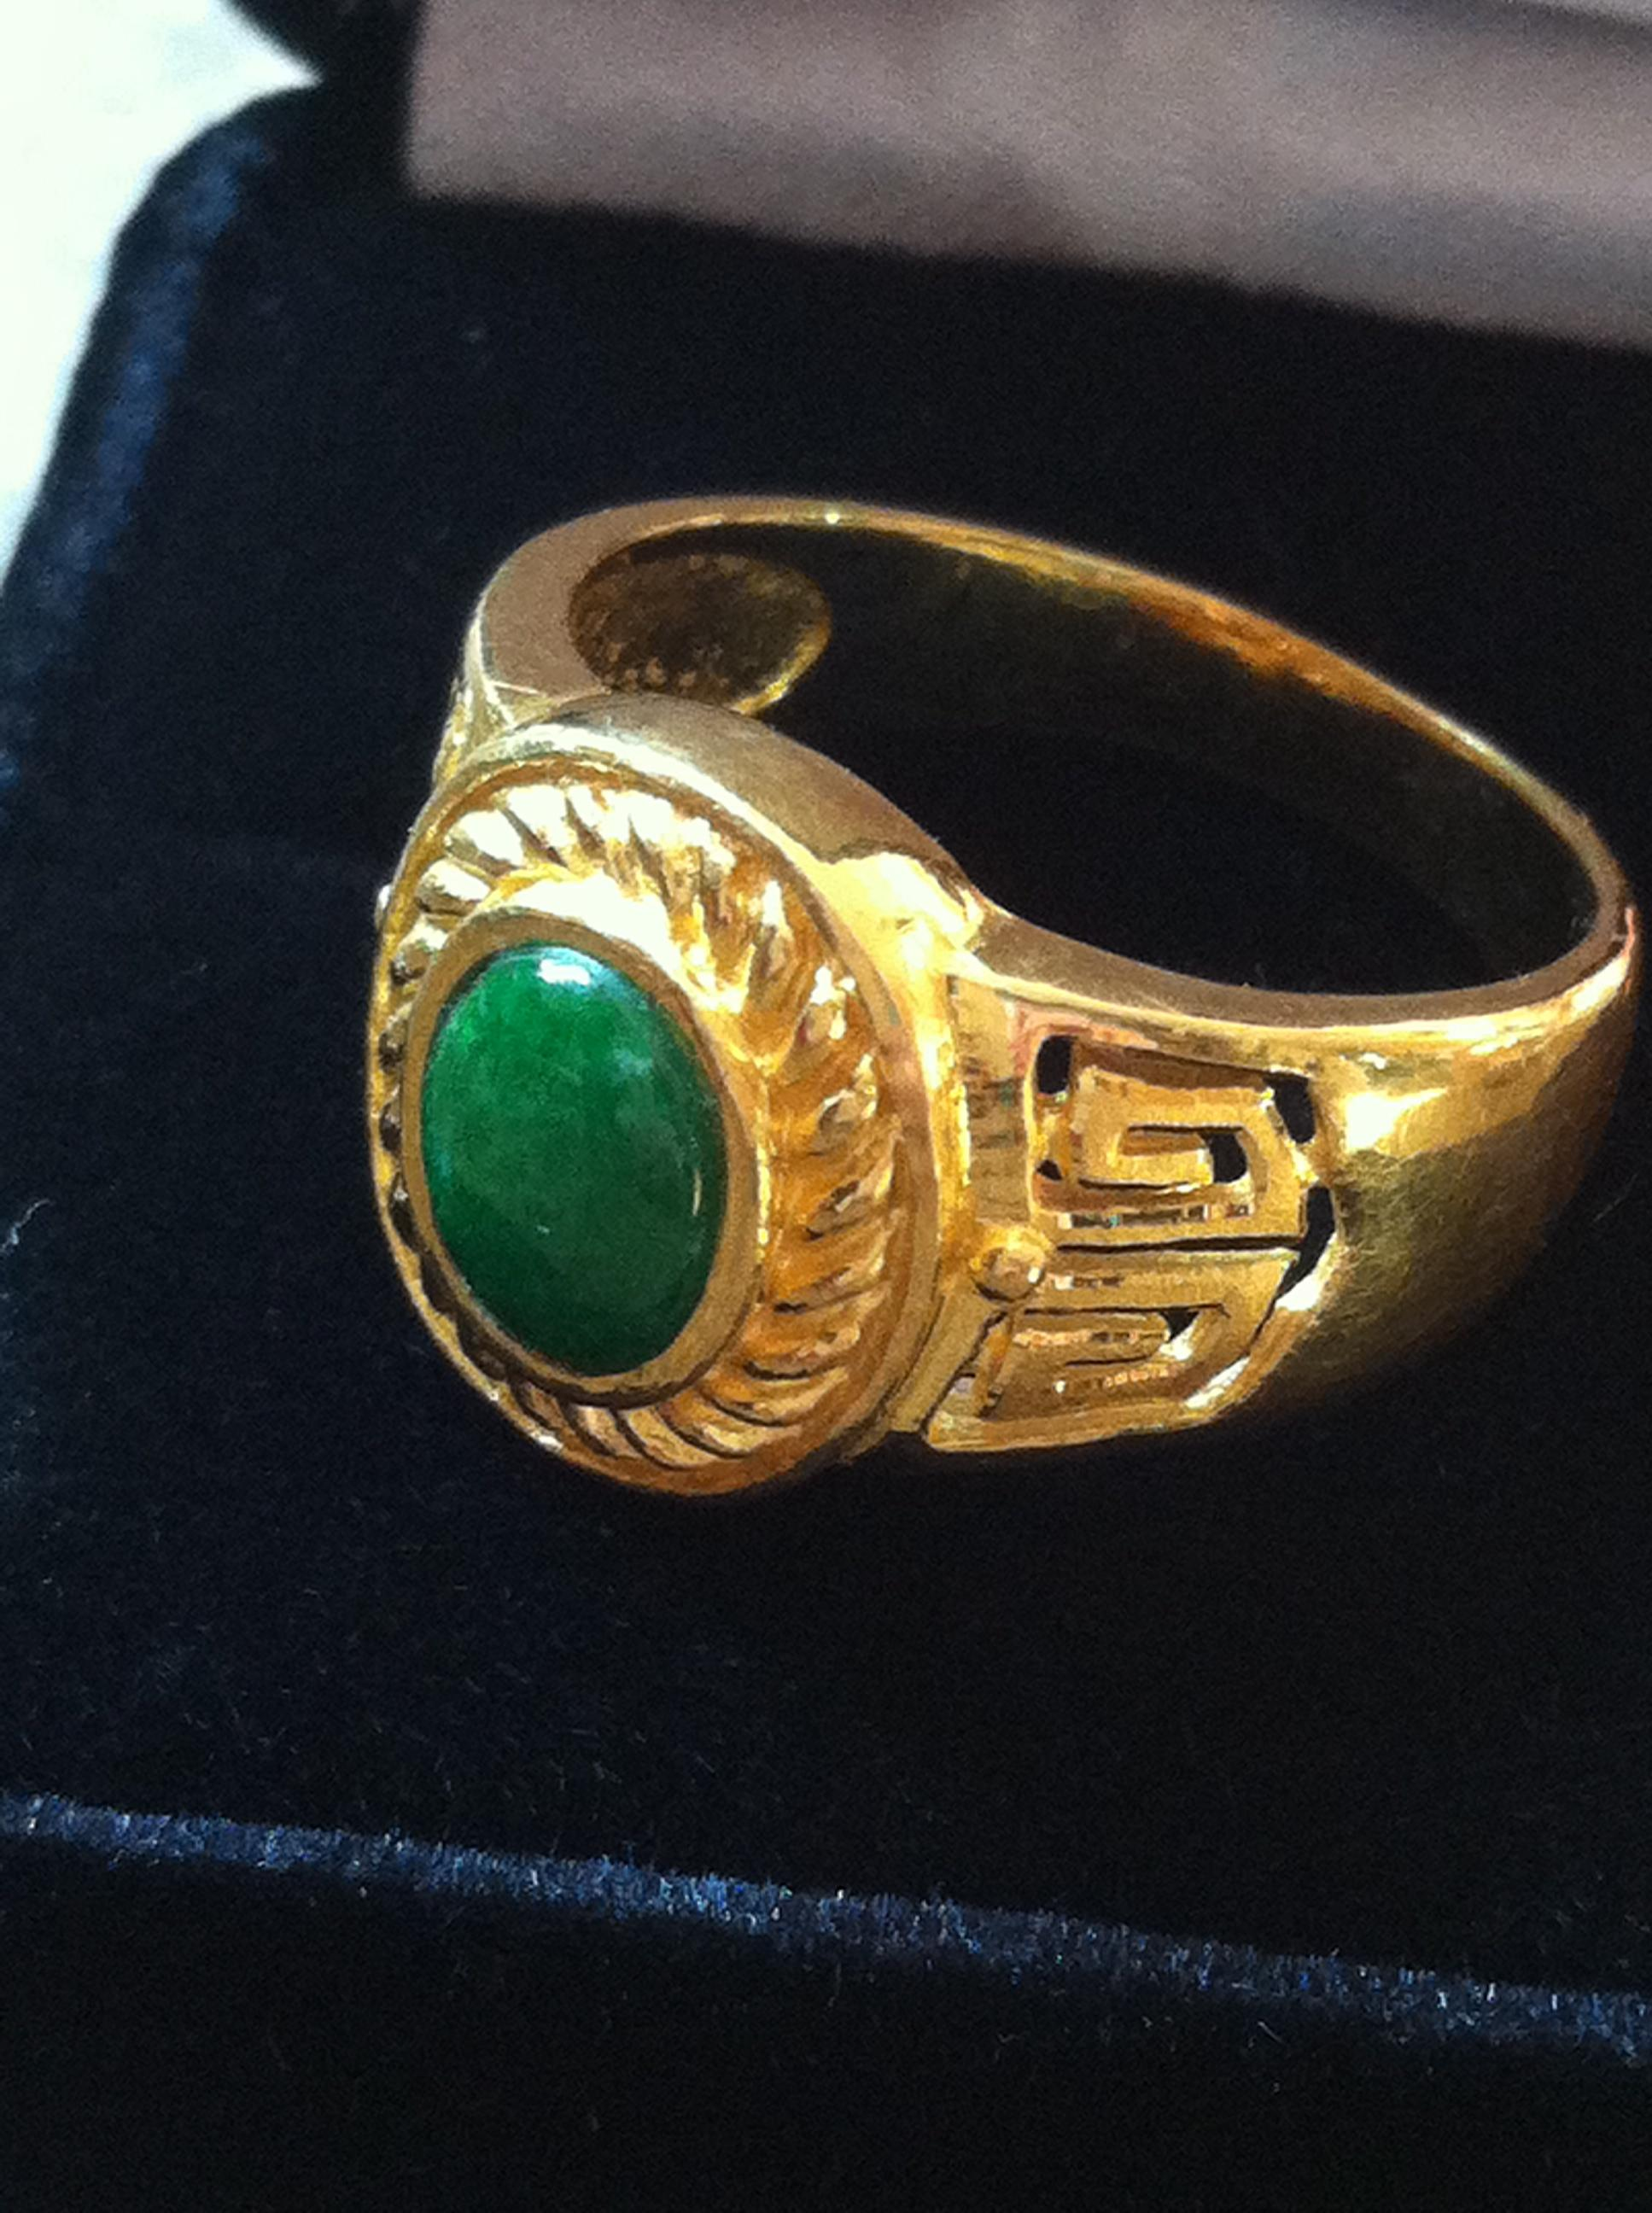 24k Asian Imperial Jade Cabochon Ring From Smallfinds Rl